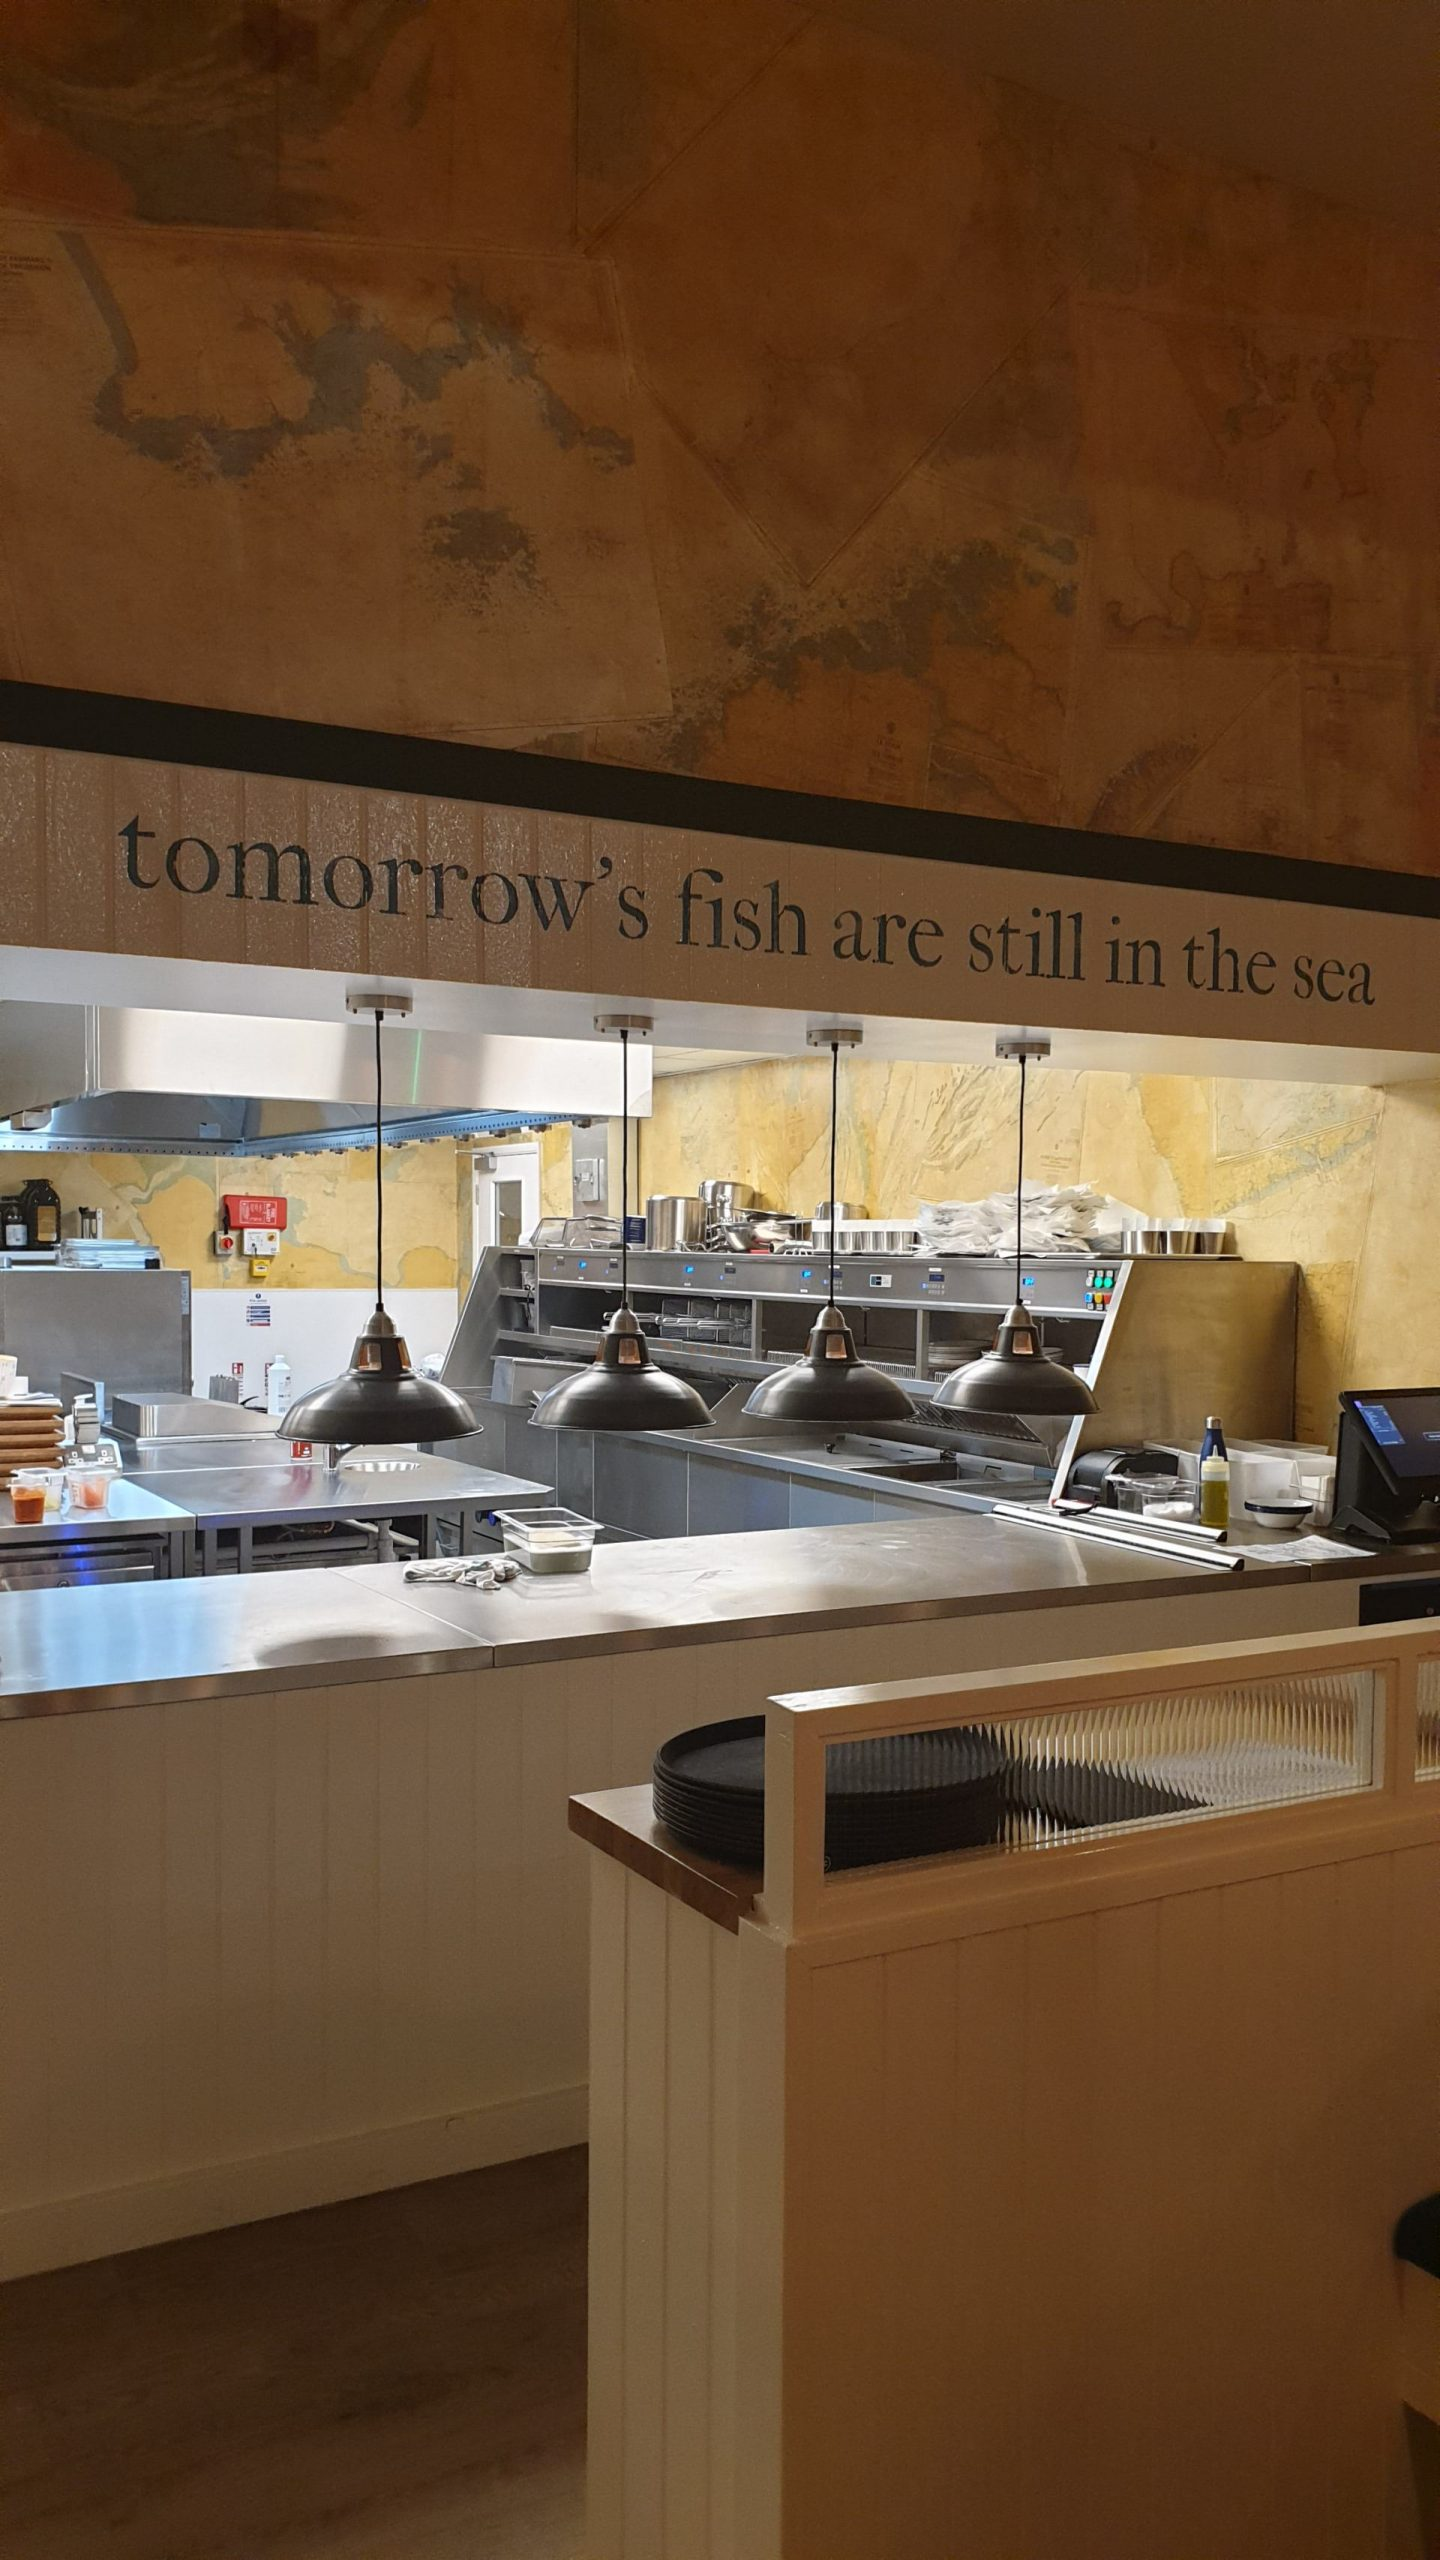 The Rockfish Ethos - tomorrows fish are still in the sea